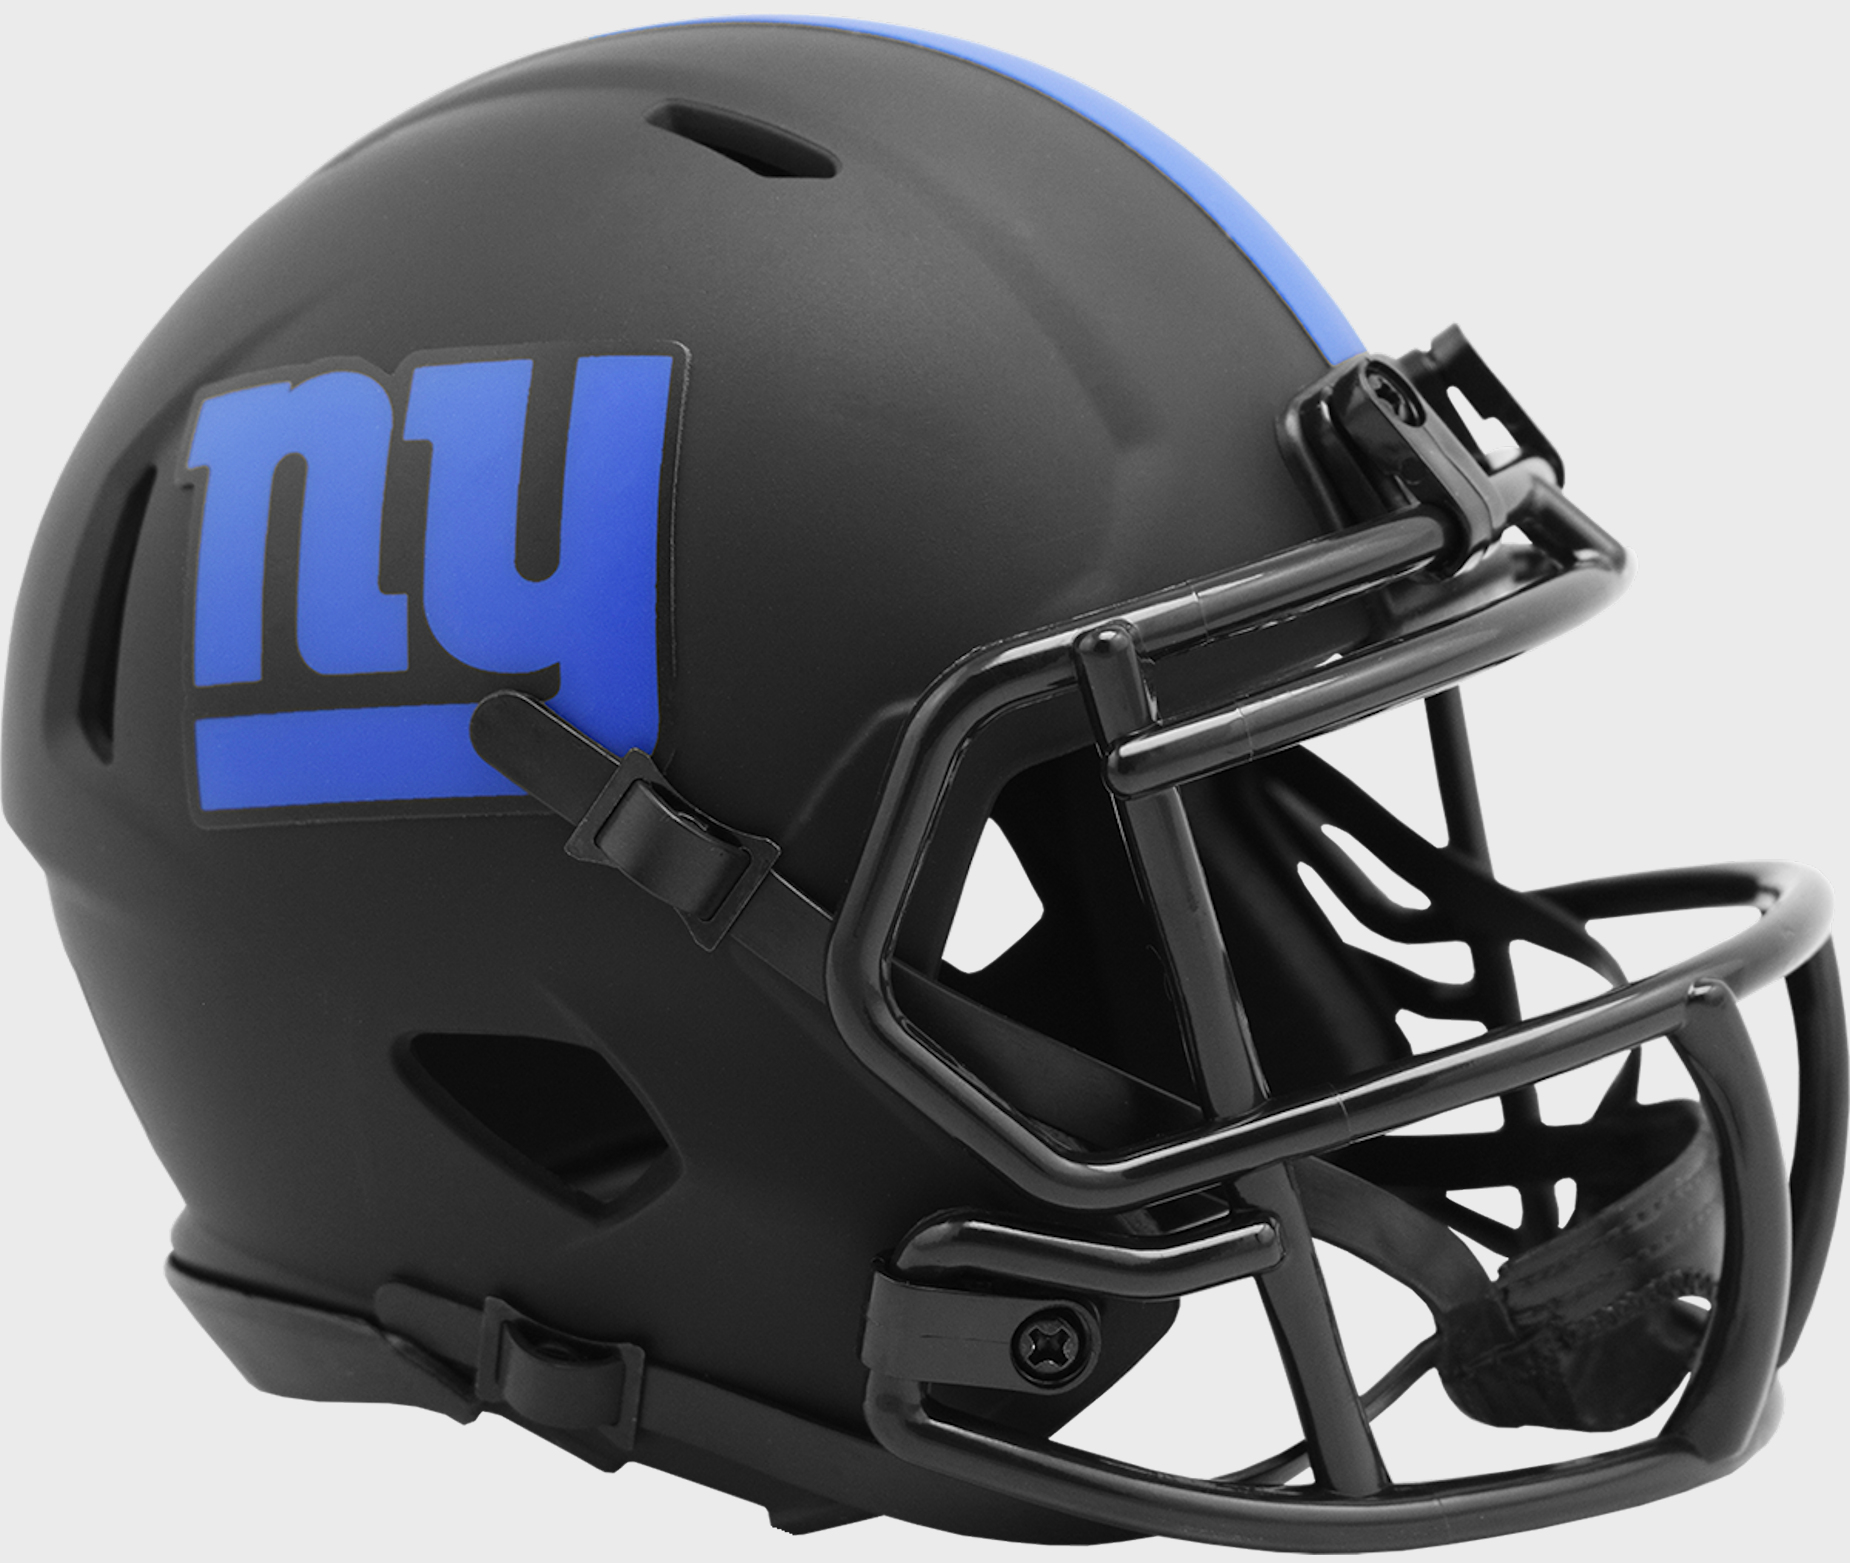 New York Giants NFL Mini Speed Football Helmet <B>ECLIPSE</B>